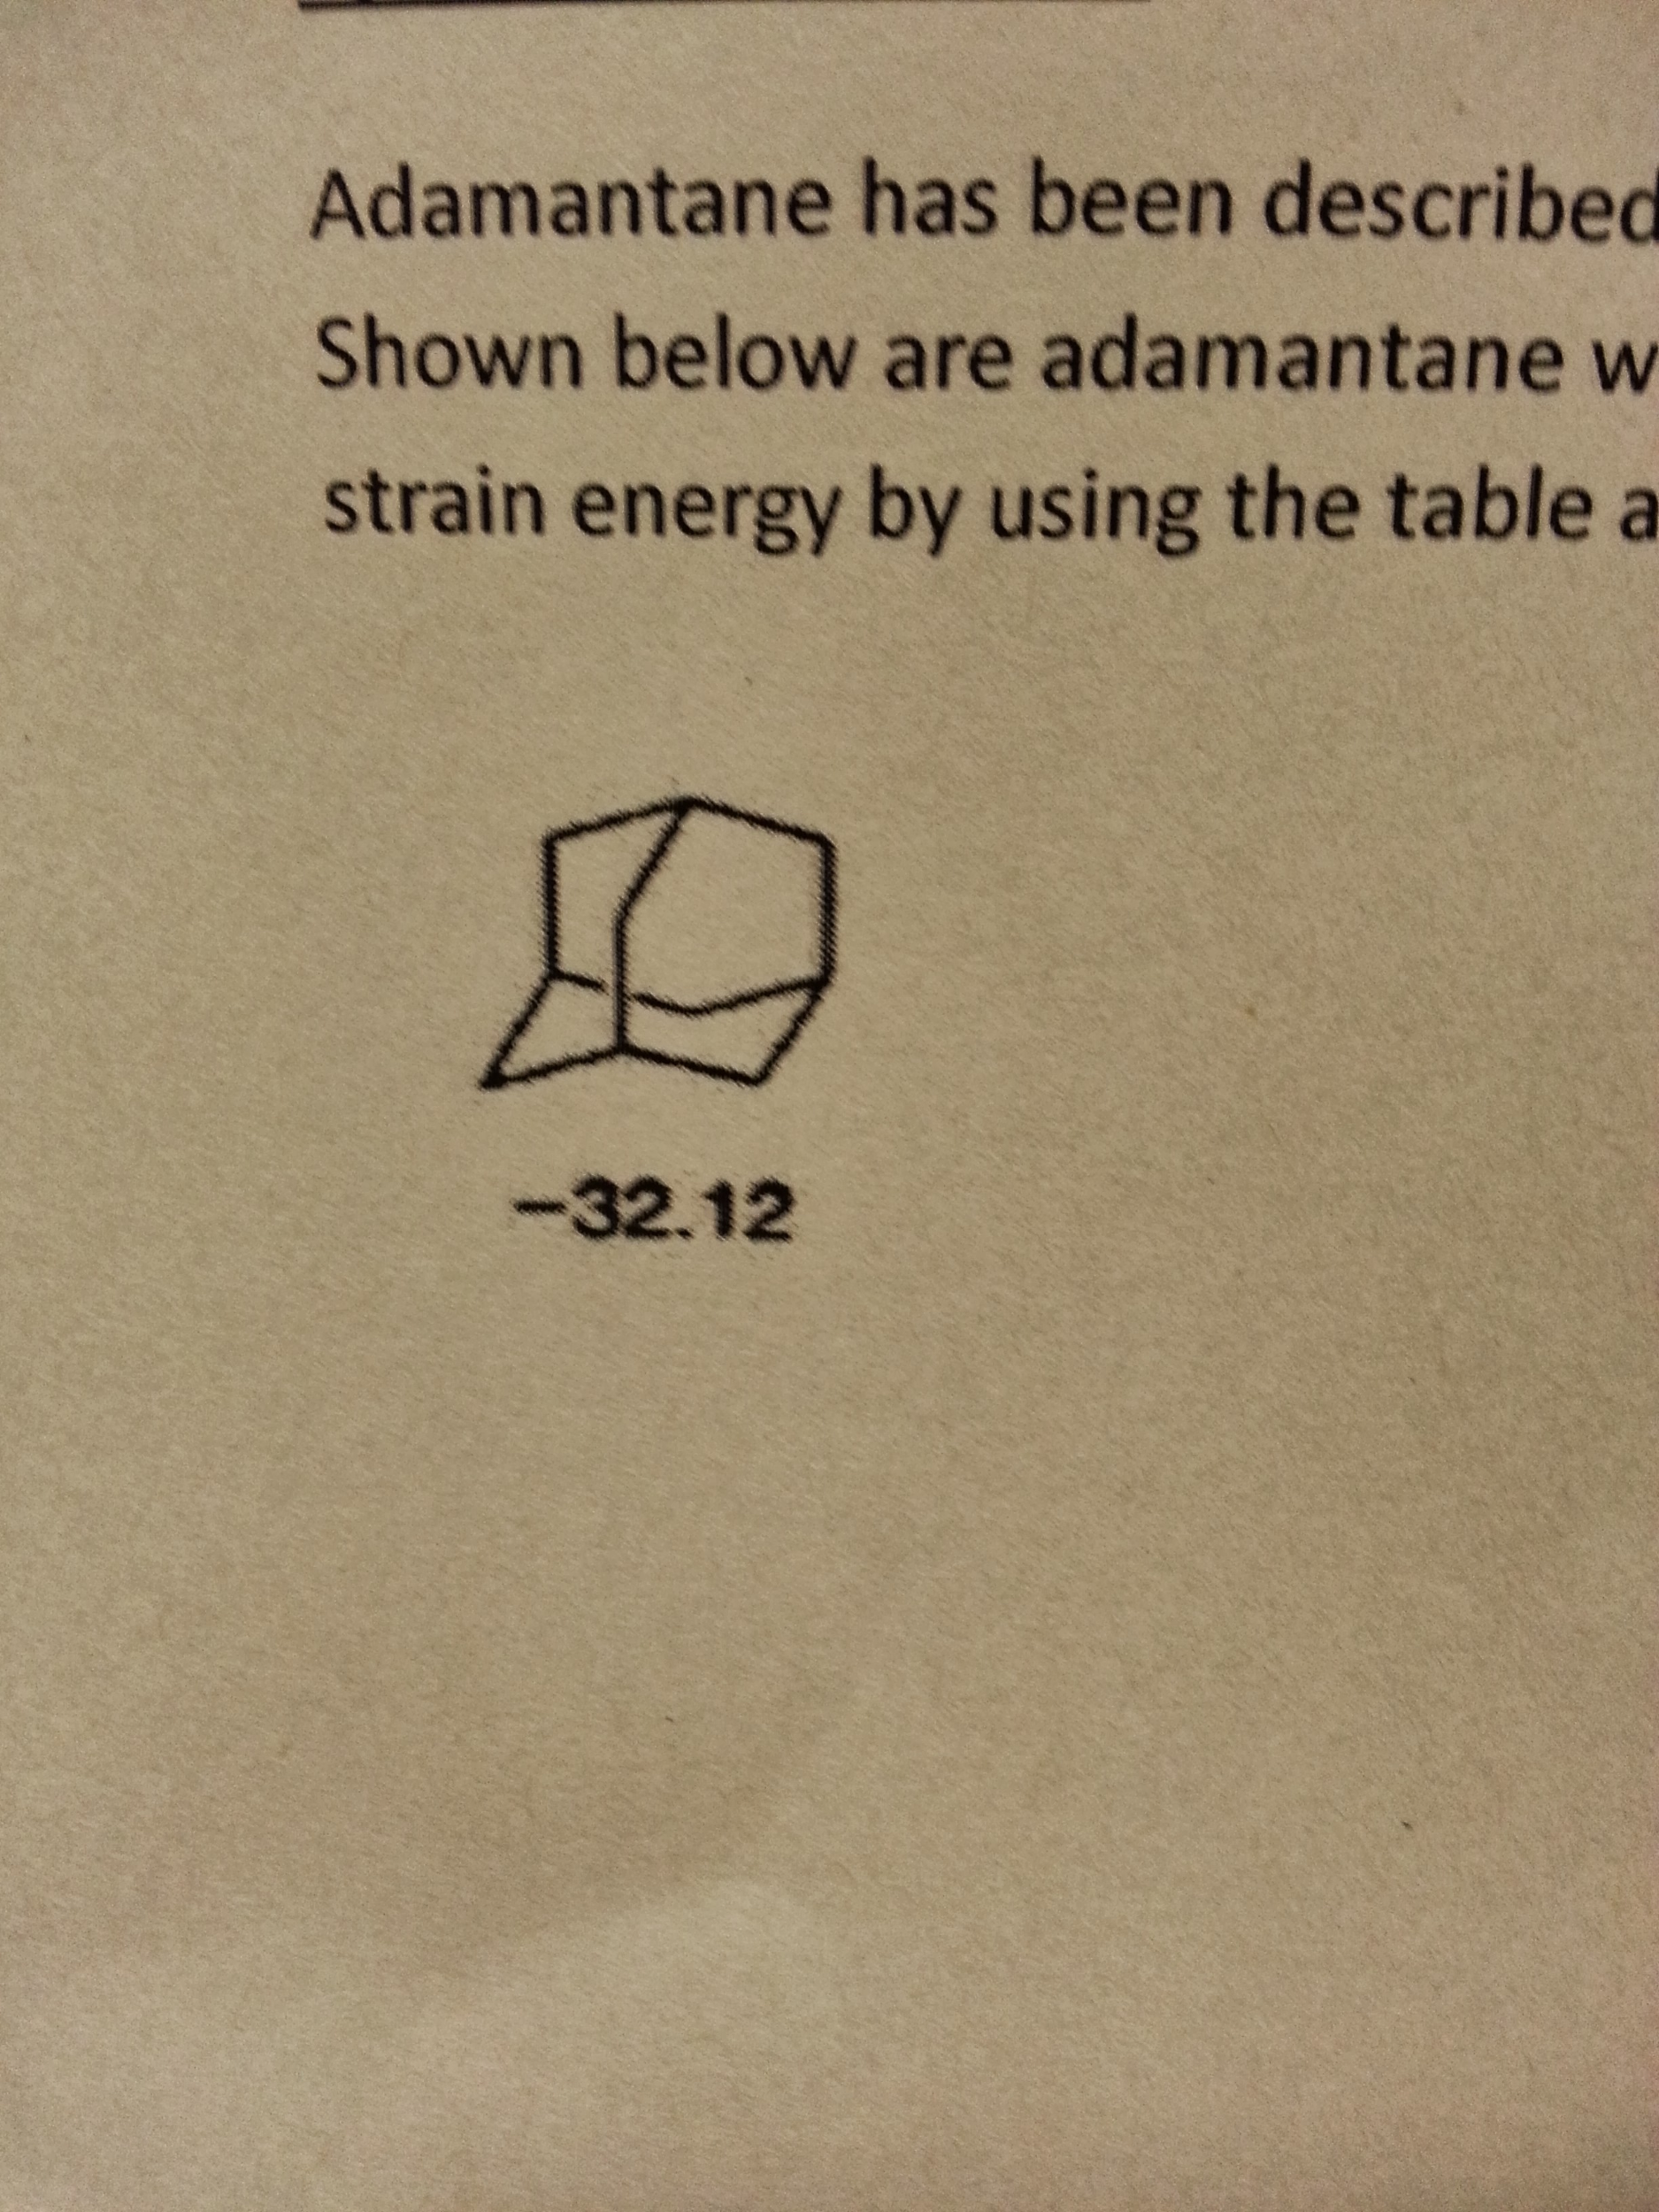 Adamantane has been Shown below are adamantine s